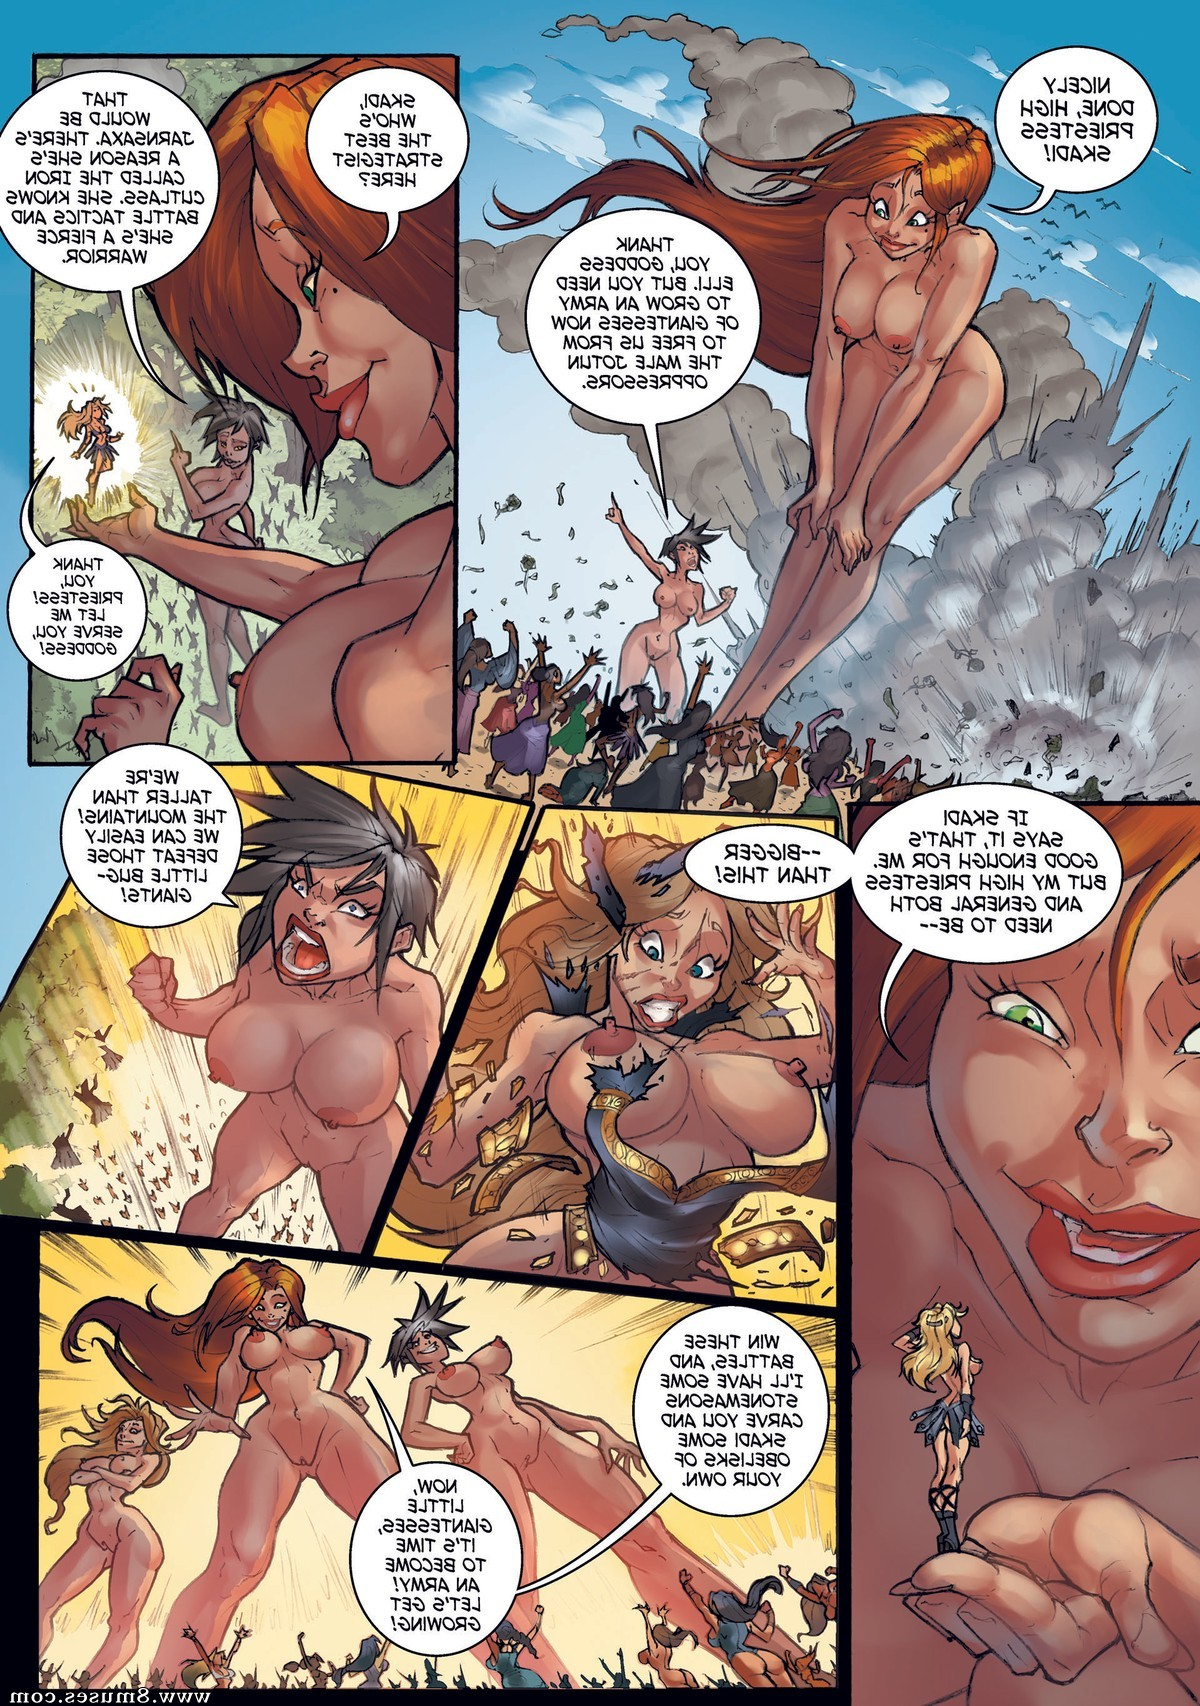 Giantess-Fan-Comics/Bigger-Than-This/Issue-3 Bigger_Than_This_-_Issue_3_14.jpg